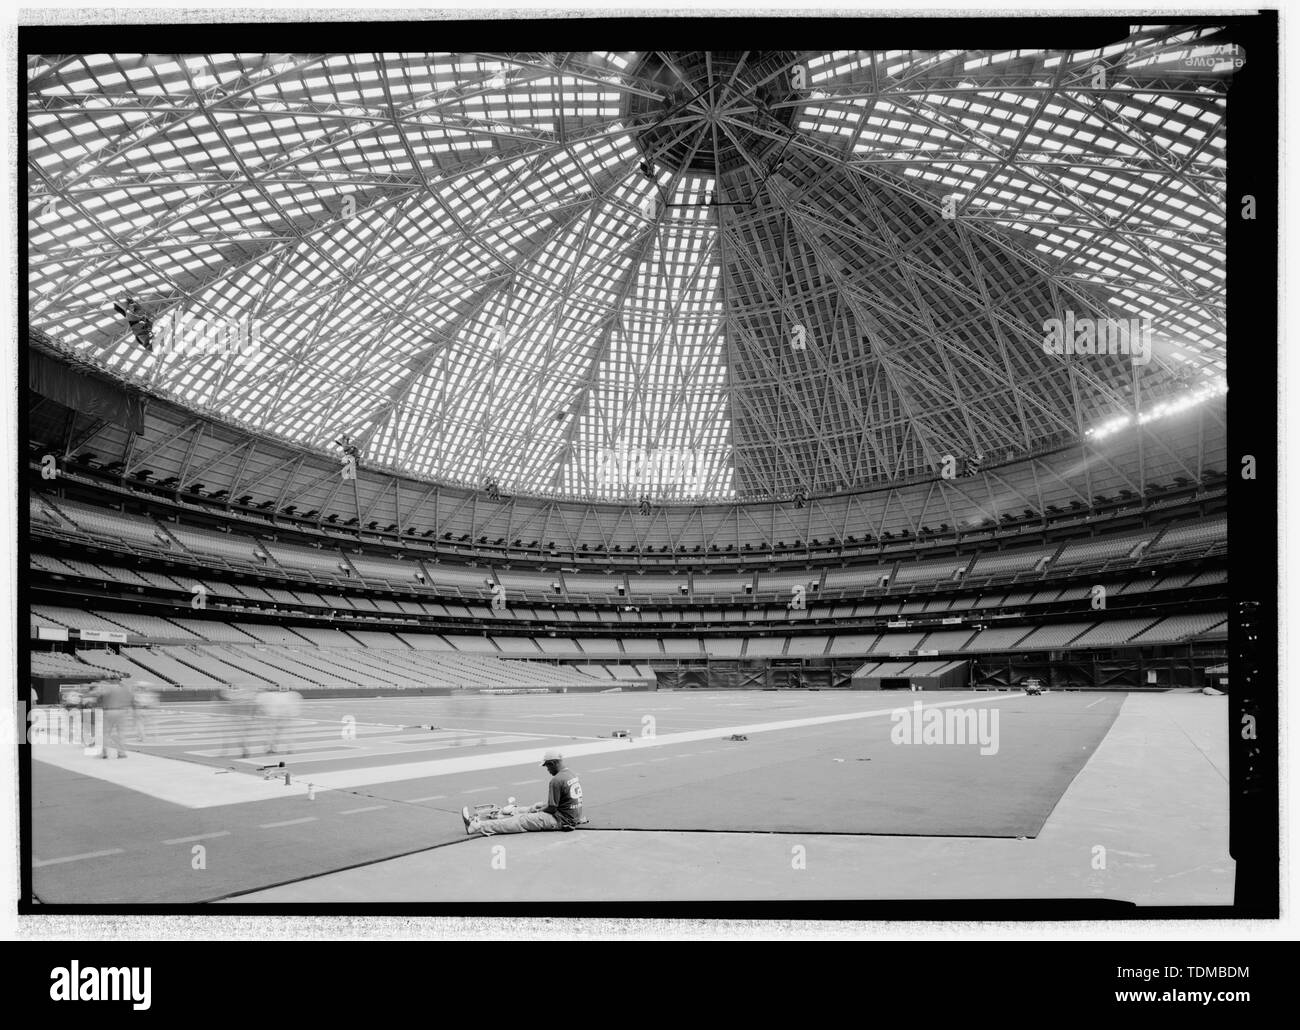 PERSPECTIVE LOOKING SOUTHWEST FROM FIELD LEVEL. WORKER IN FOREGROUND IS STITCHING TOGETHER ASTROTURF FOR FOOTBALL GAMES. - Houston Astrodome, 8400 Kirby Drive, Houston, Harris County, TX; Lloyd and Morgan; Wilson, Morris, Crain and Anderson; H A Lott, Inc; Eyster, Herbert H; Sam P Wallace Company; Fish Electric; The Prescon Corporation; Walter P Moore and Associates, Inc; Praeger-Kavanagh-Waterbury; Turney, J G; Lockwood, Andrews and Newnam Inc; Dale S Cooper and Associates; Kiewitt, G R; Bass, Louis O; Bolt, Beranek and Newman; American Bridge Division; US Steel Corporation; The Rackle Compan - Stock Image